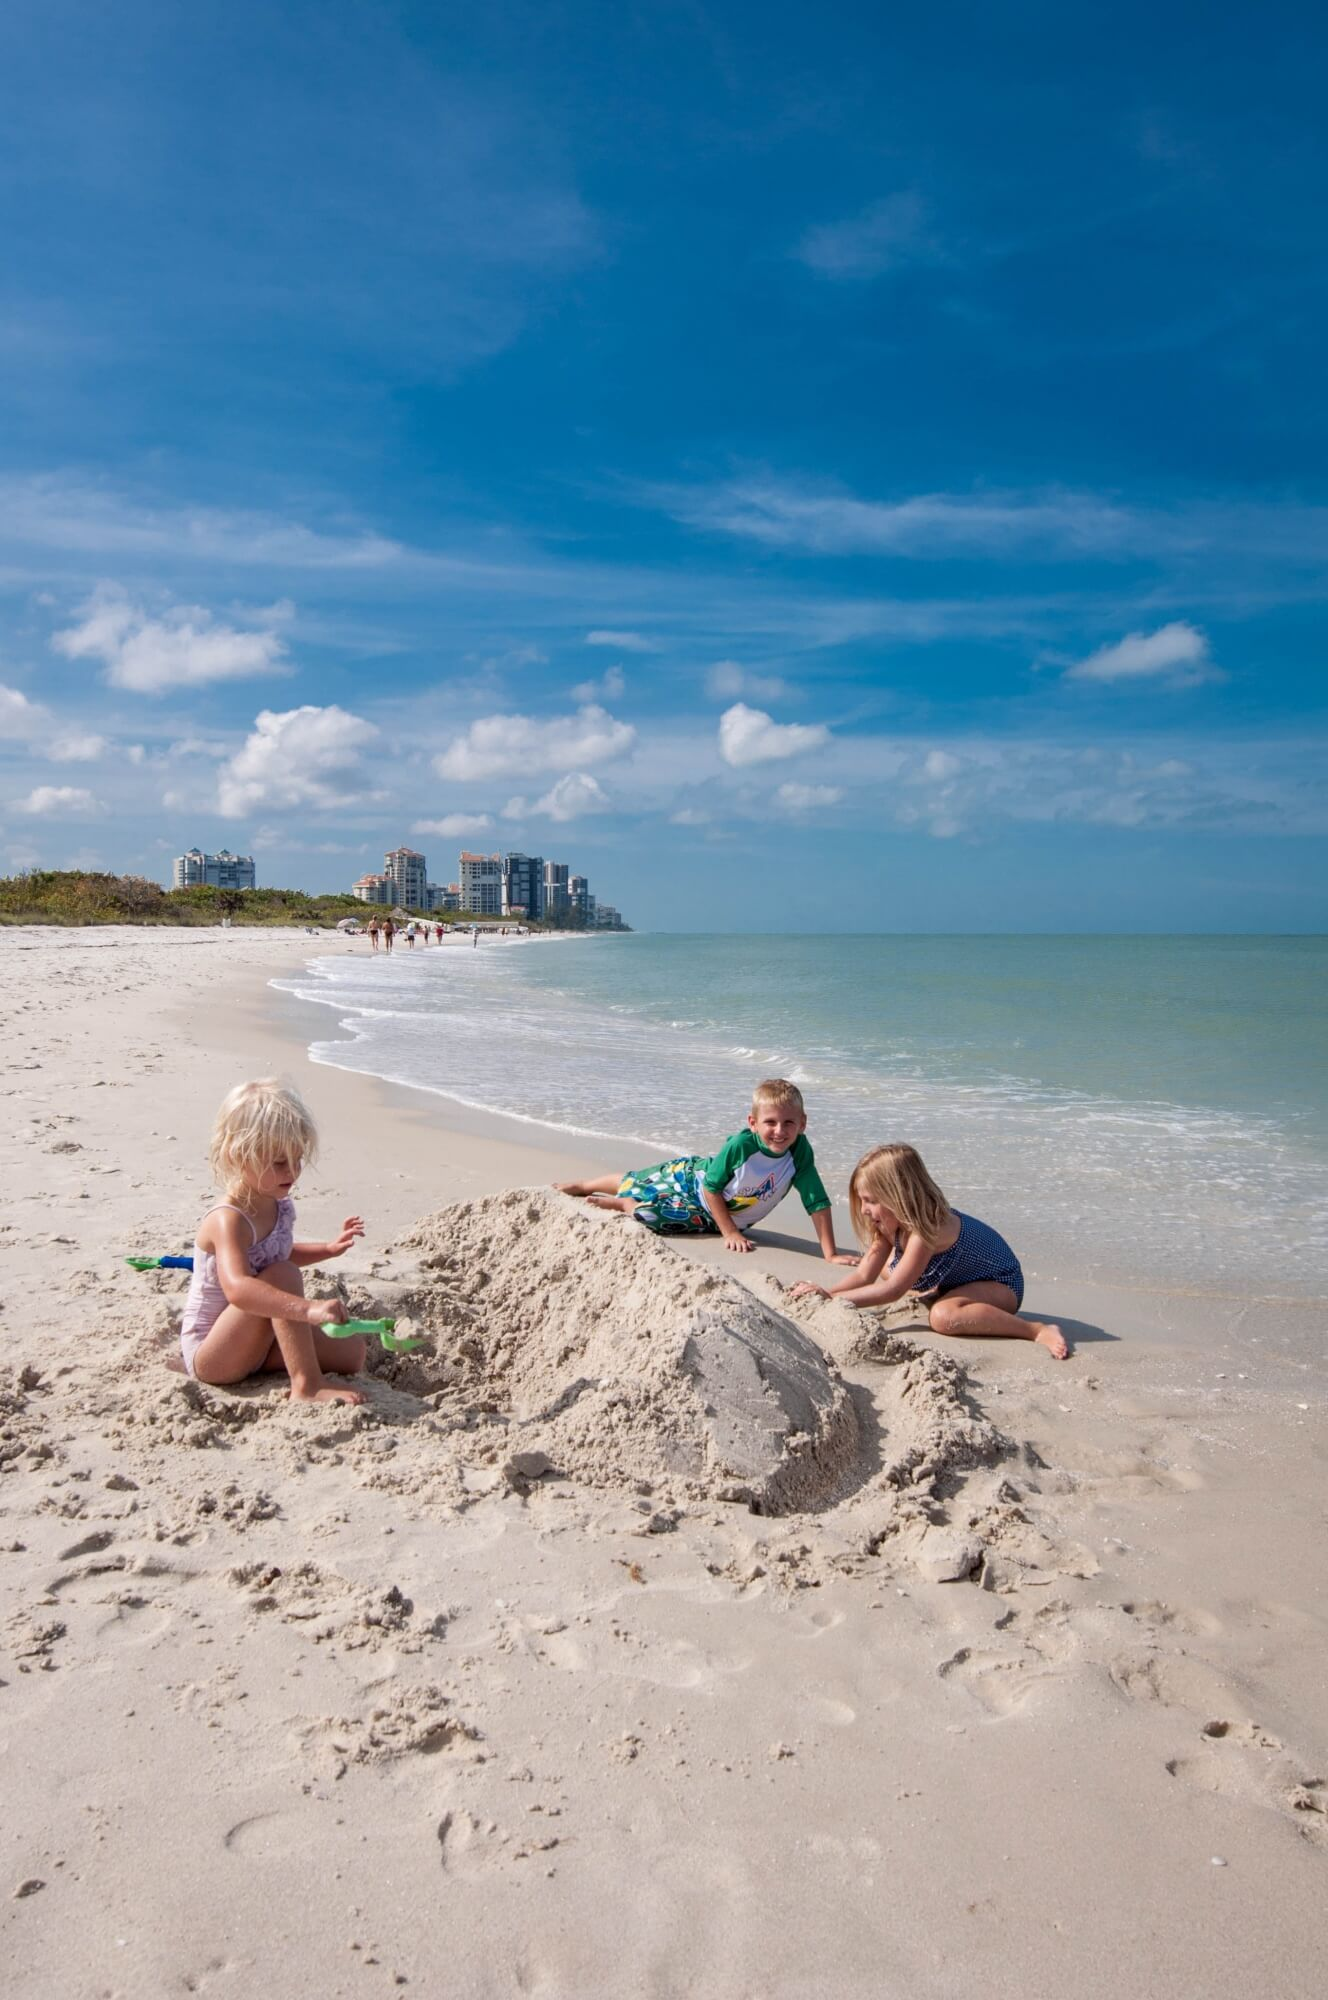 MustDo.com | Kids build a sandcastle in the white sand beach at Clam Pass Beach Naples Florida. Photo by Debi Pittman Wilkey.